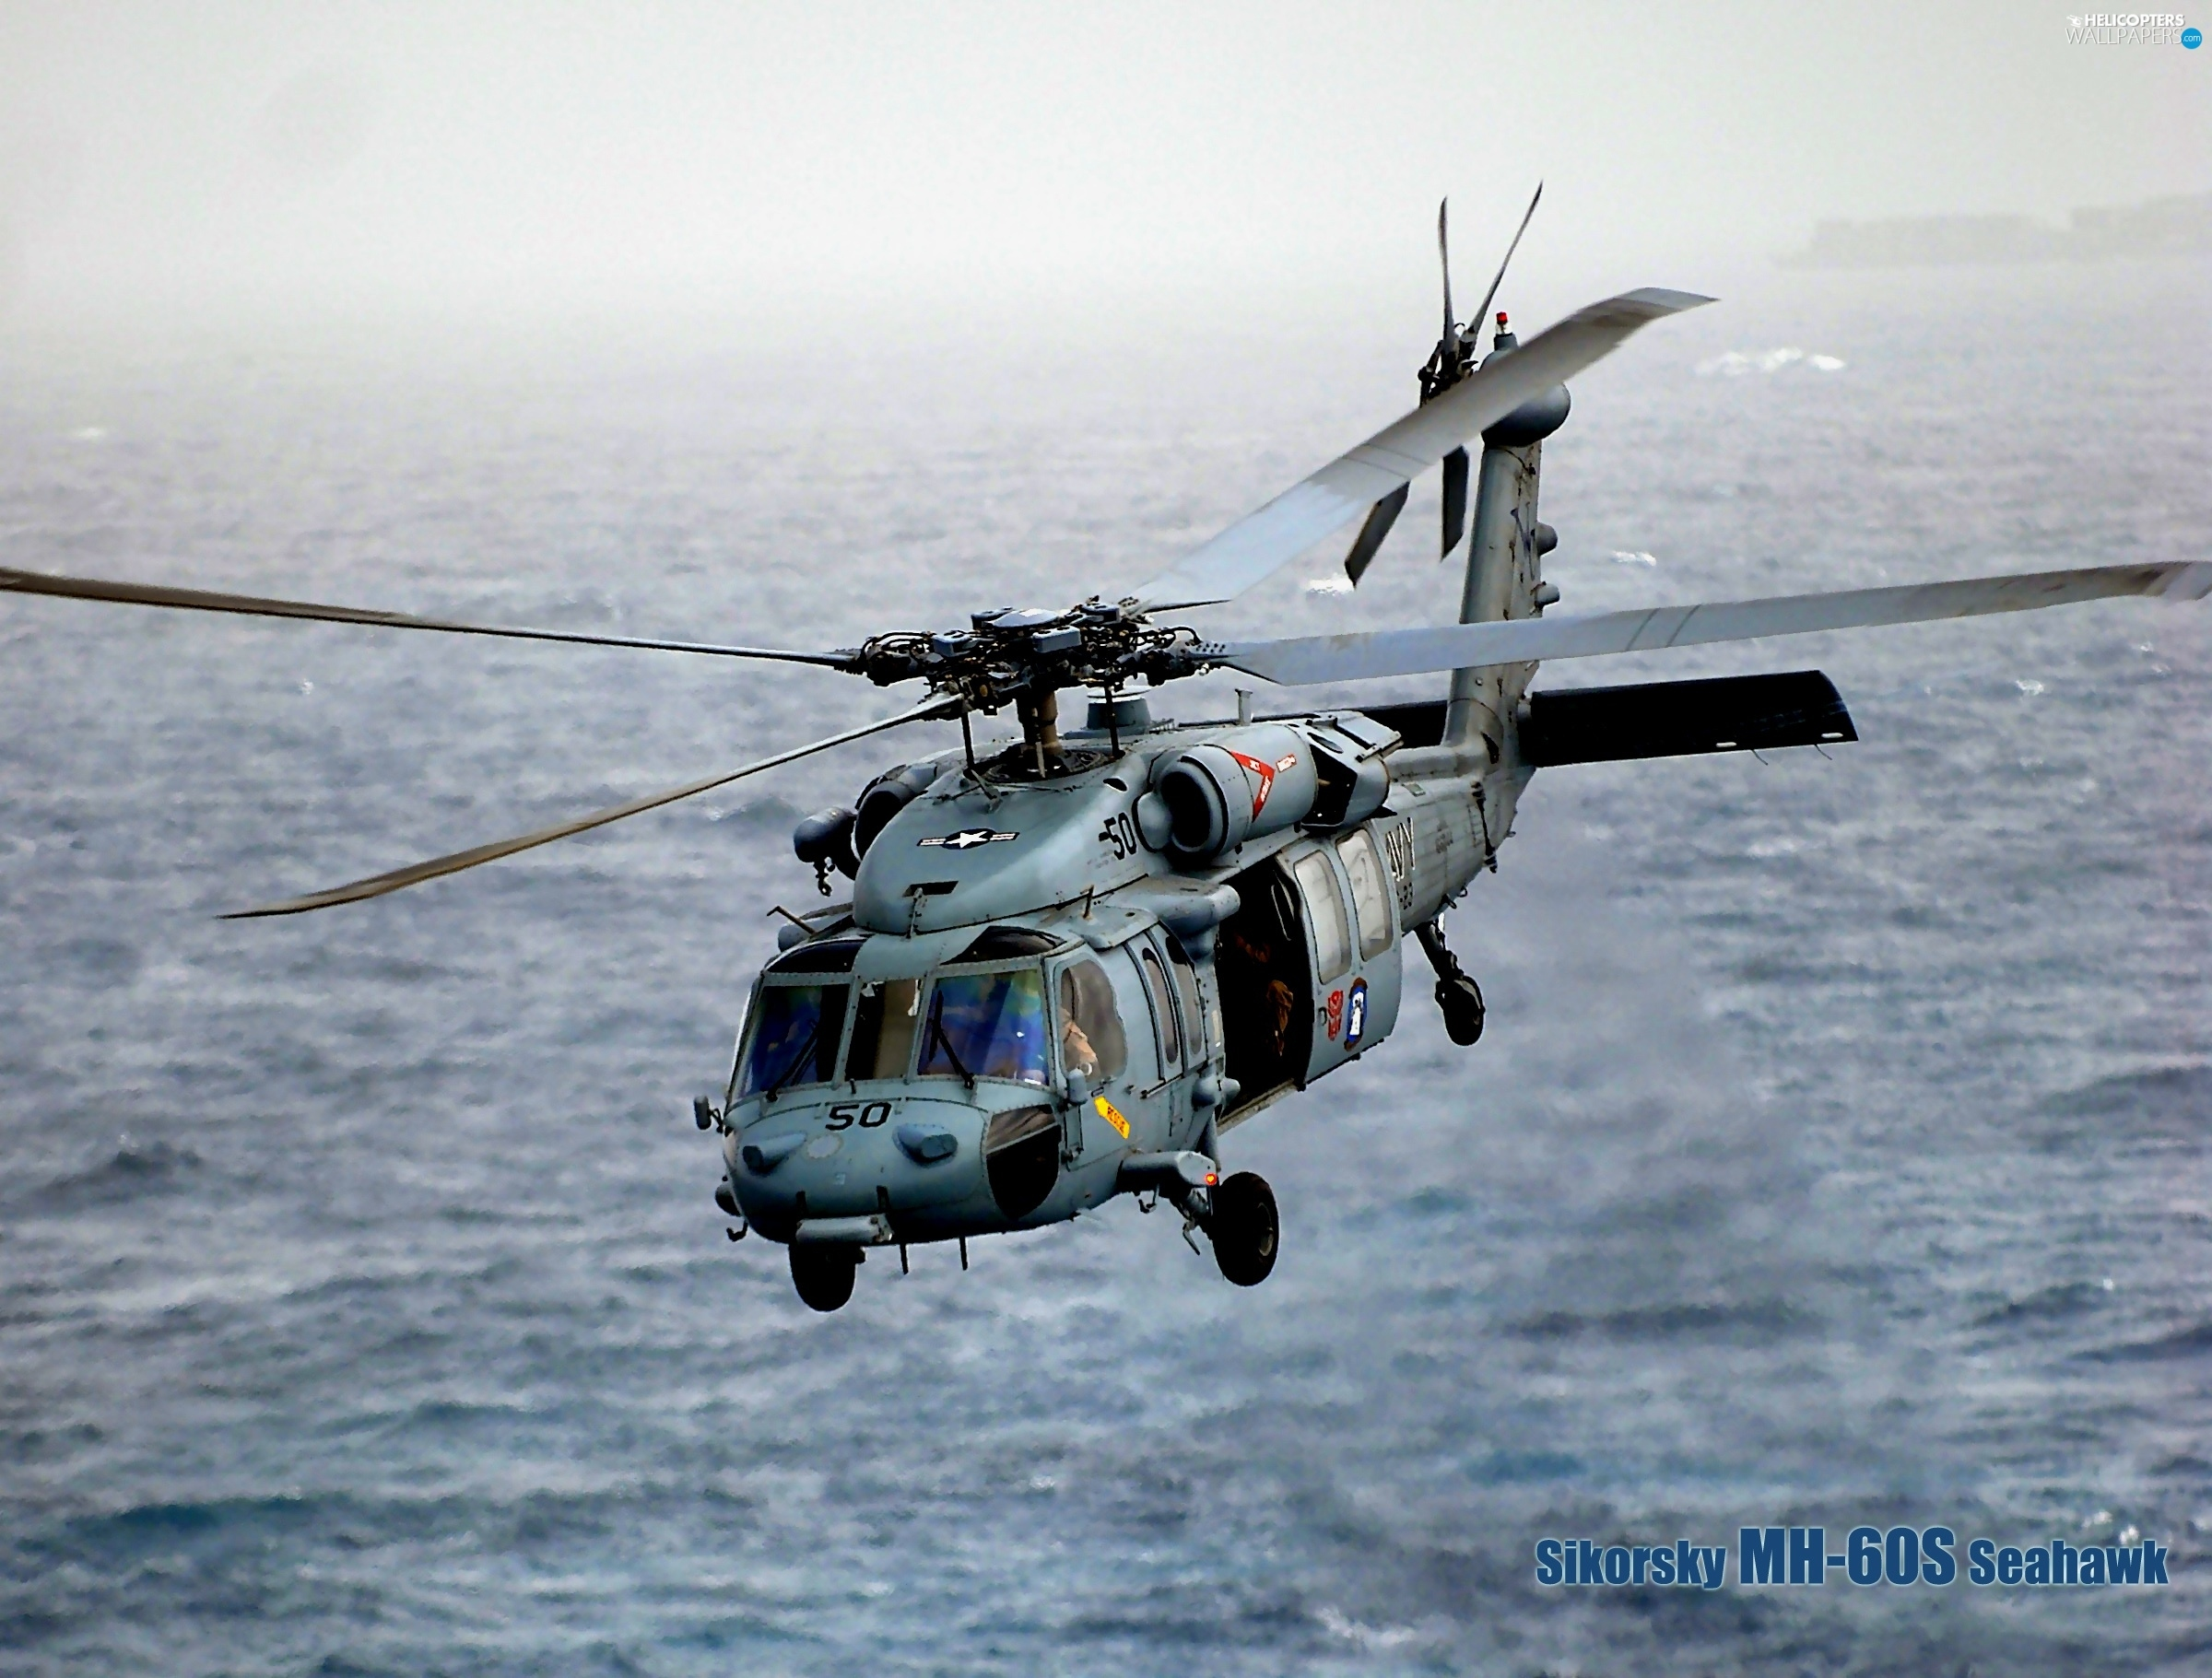 Military truck, Sikorsky MH-60S Sea Hawk